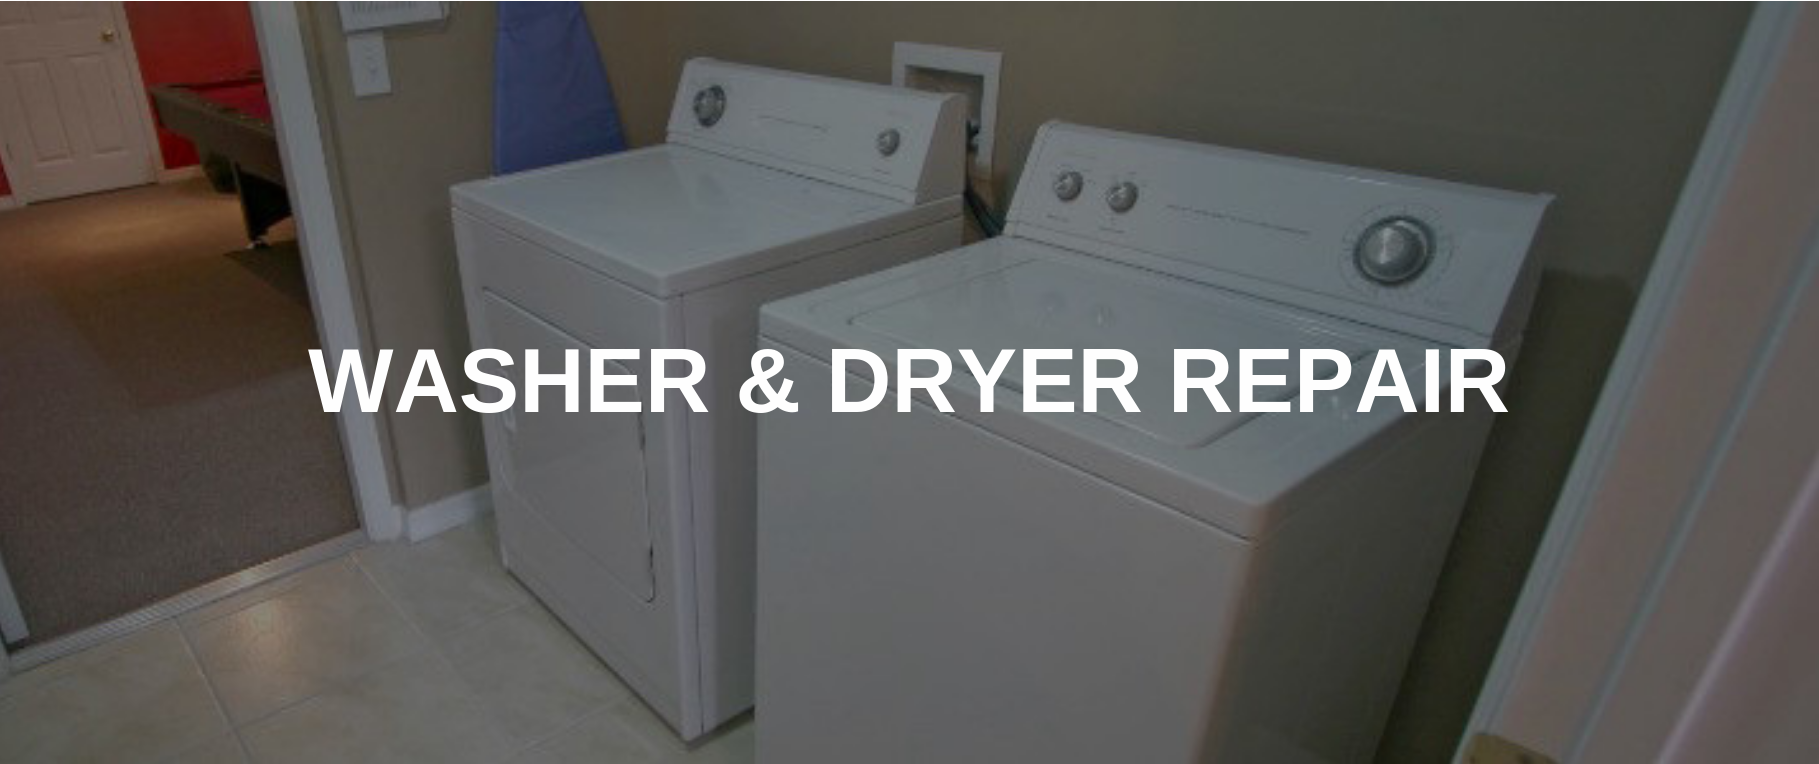 washing machine repair bryan